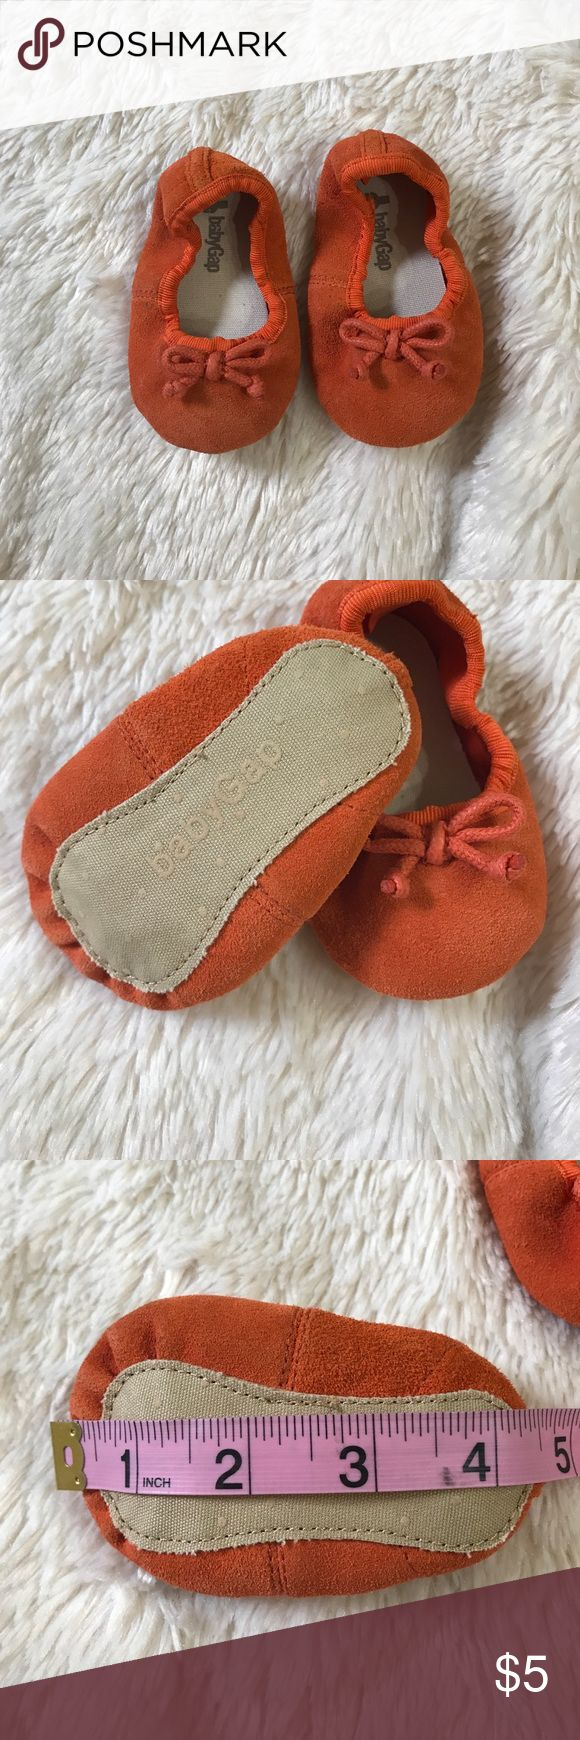 Orange slipper baby shoes Orange suede with bow detail size 6-12 months. baby gap Shoes Baby & Walker